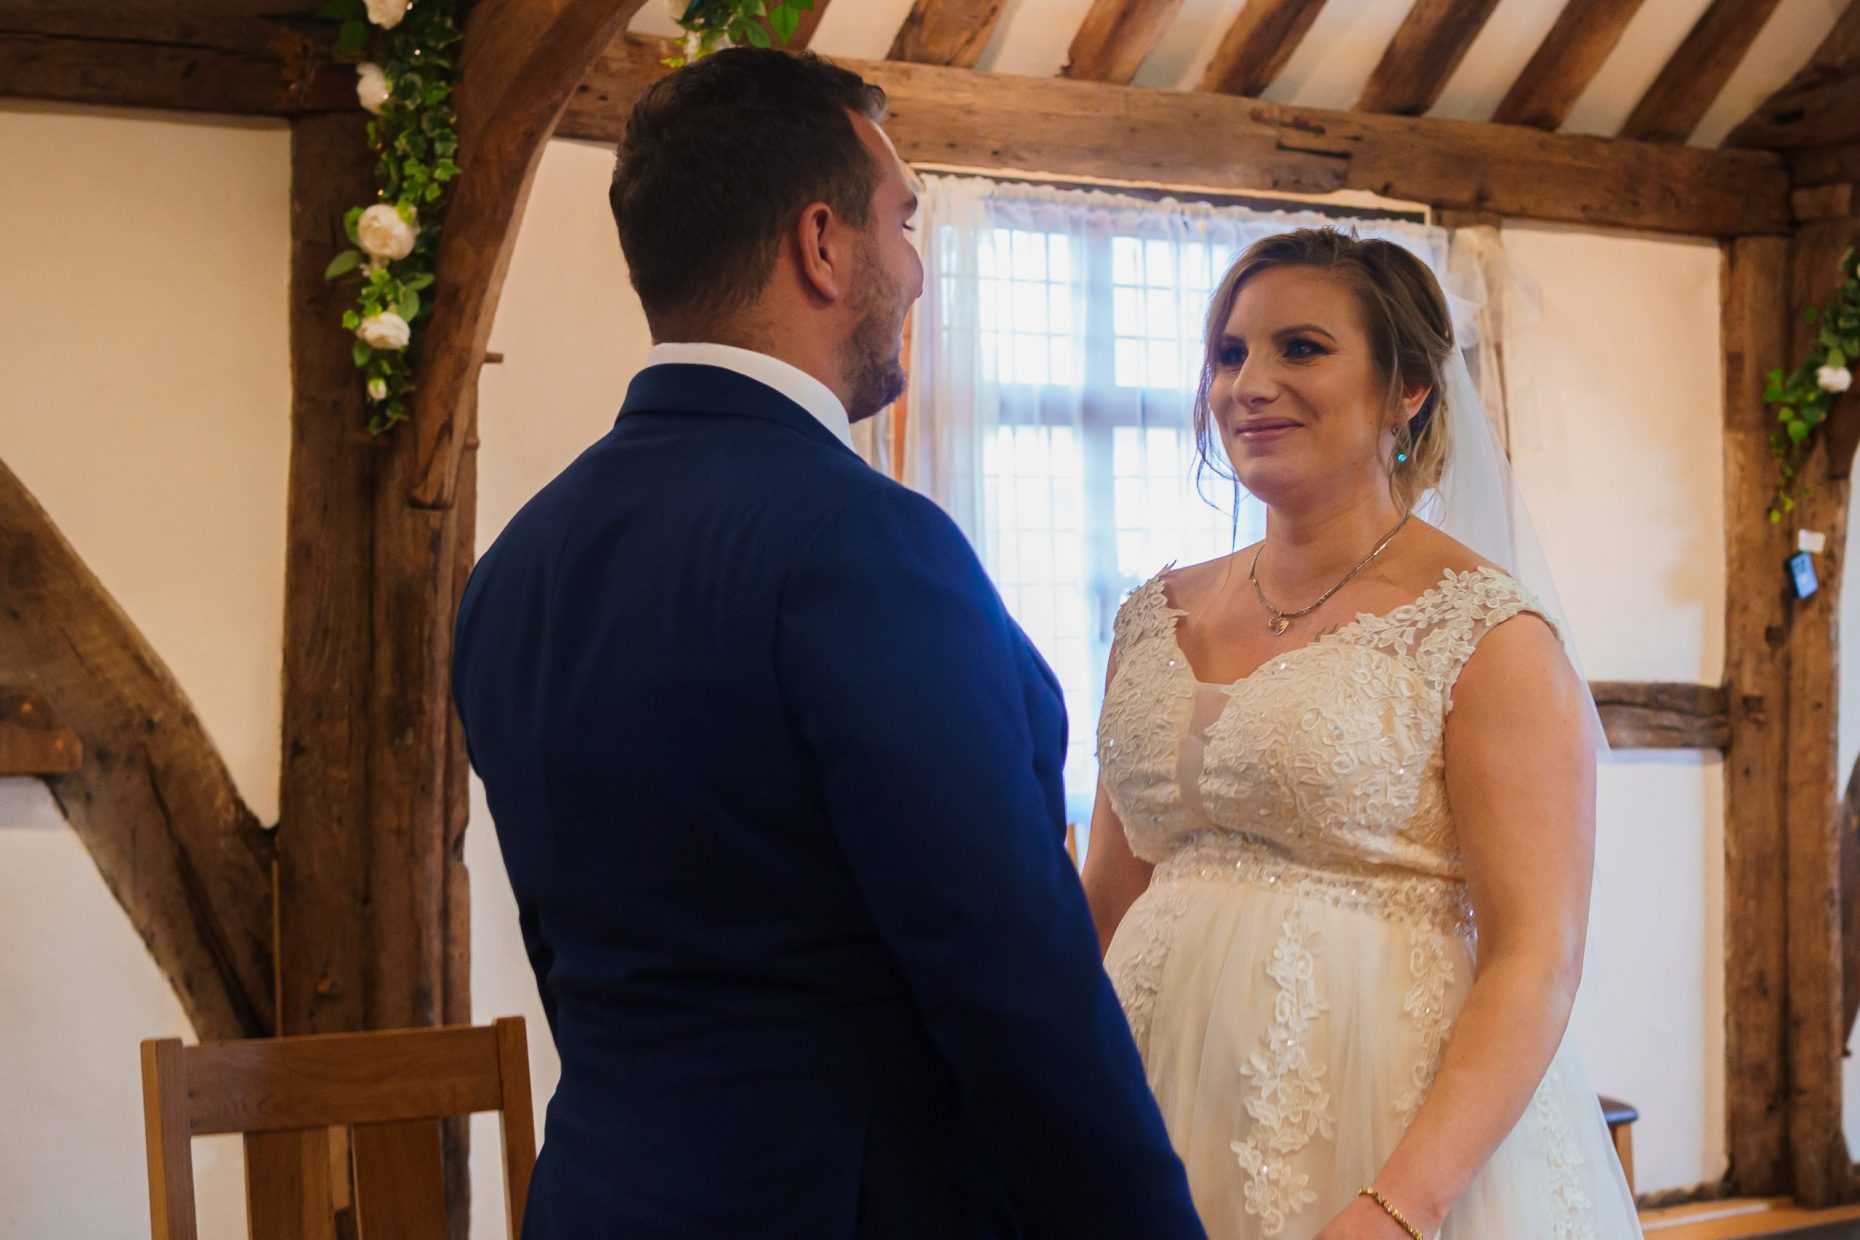 A wedding ceremony at Westgate Hall